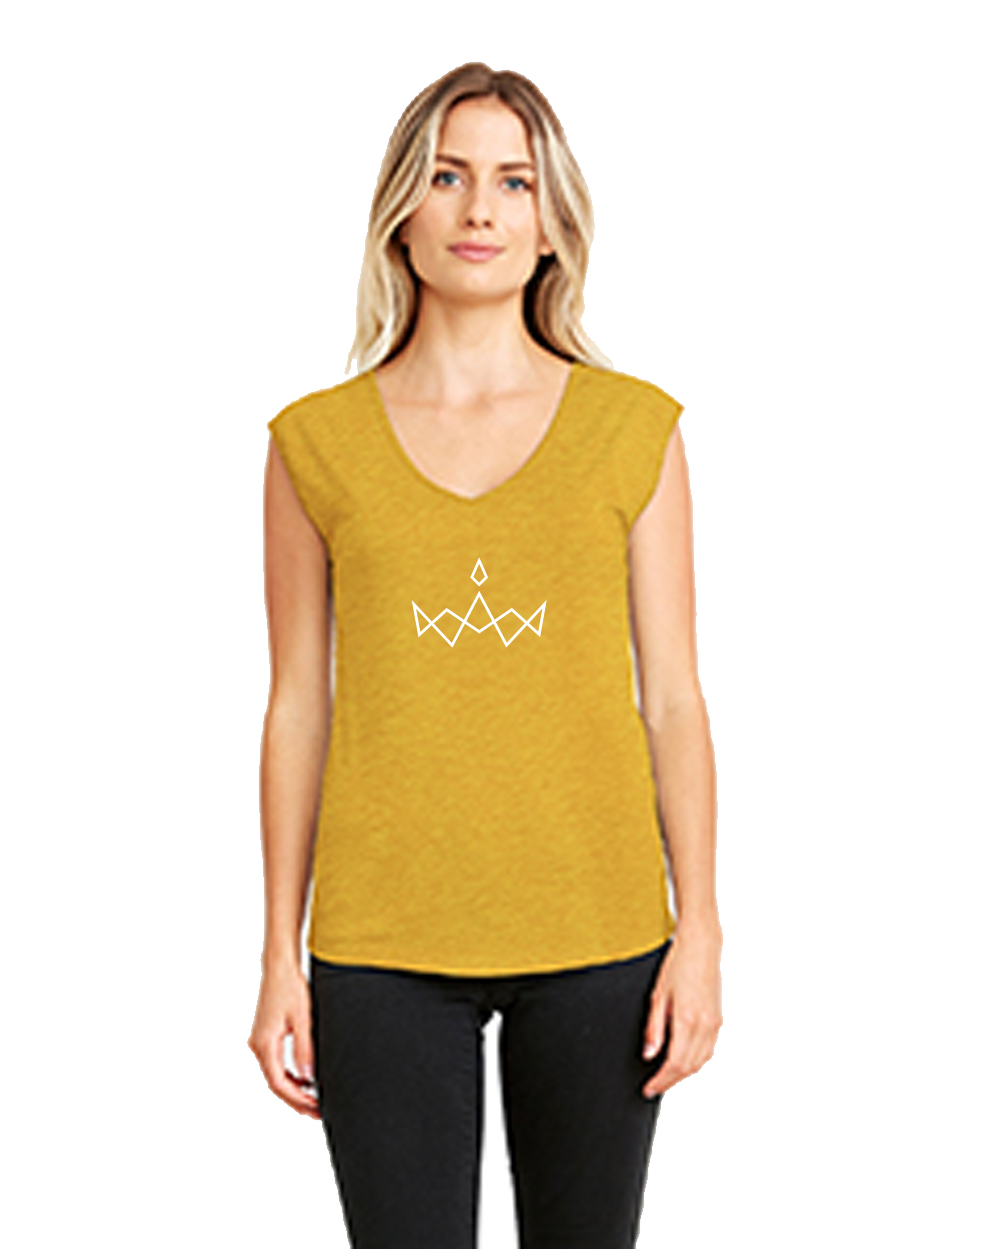 2018 Crown Women's Festival Sleeveless V-Neck